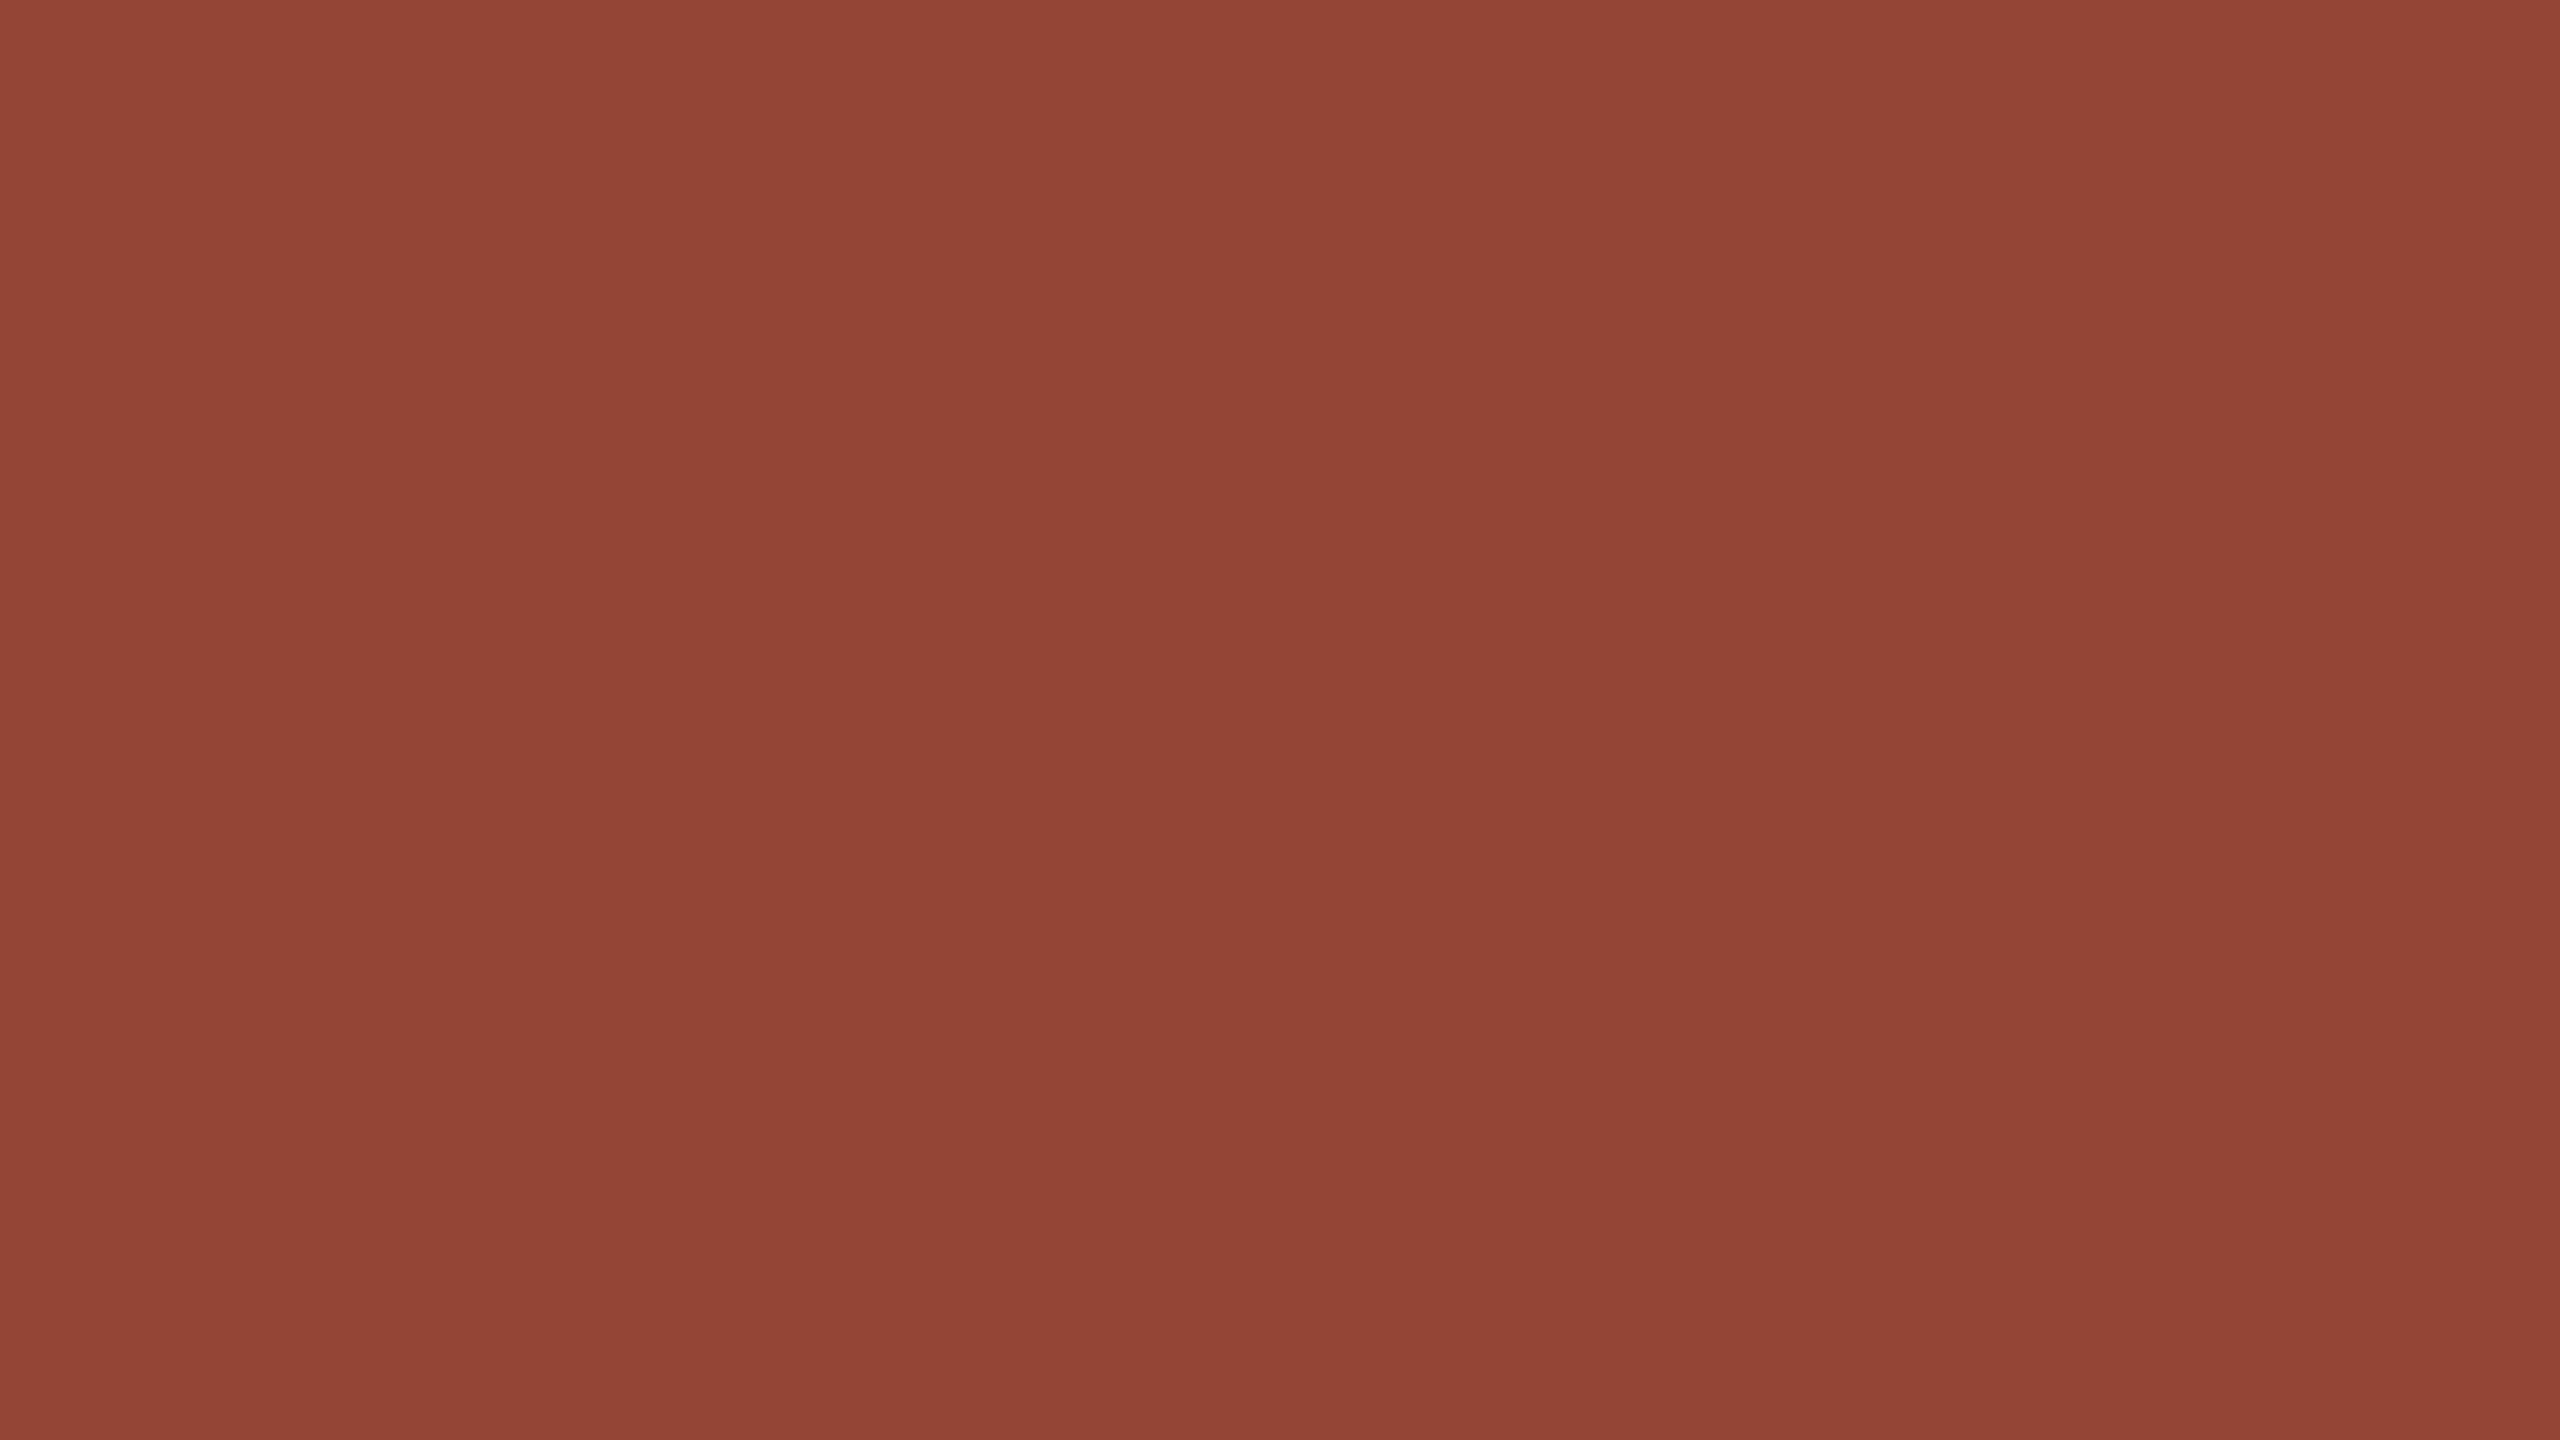 2560x1440 Chestnut Solid Color Background